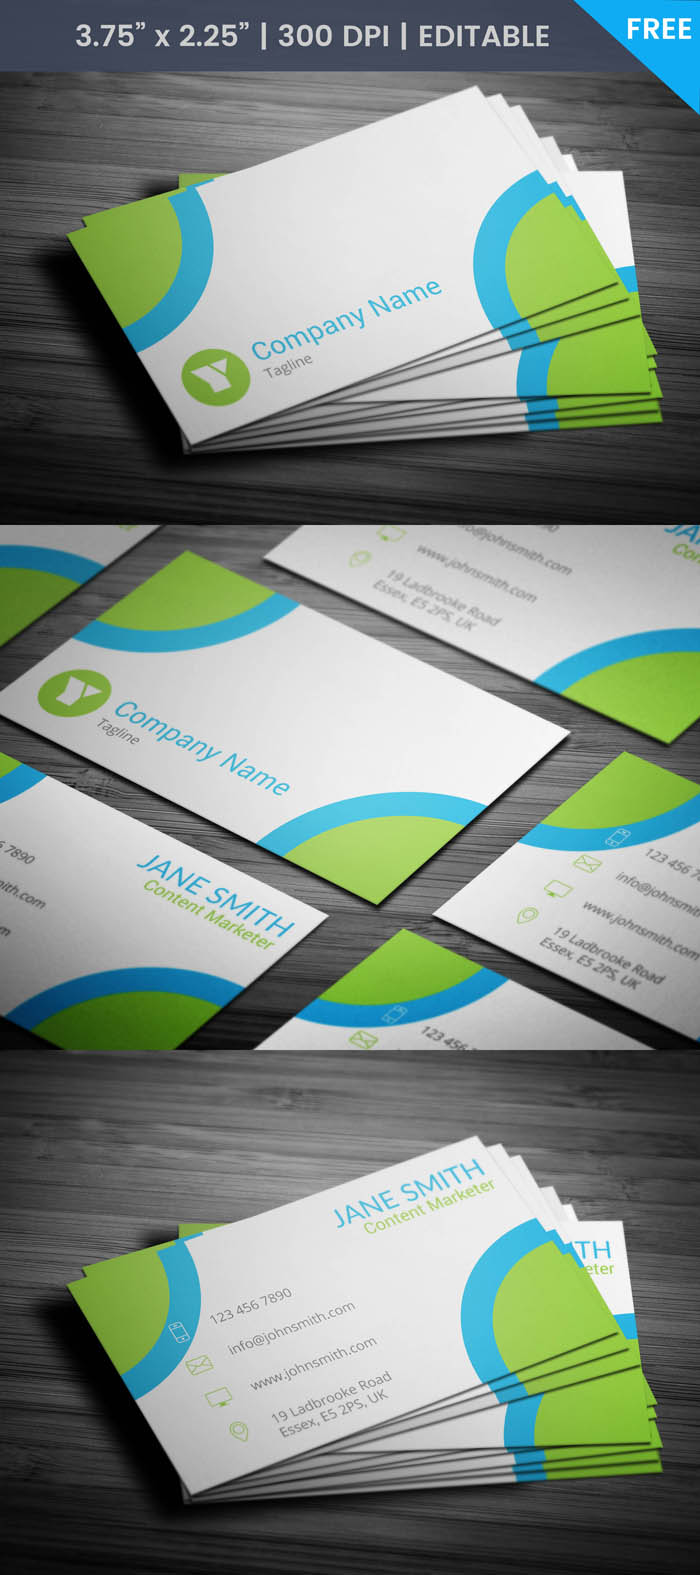 Free Content Marketer Business Card Template